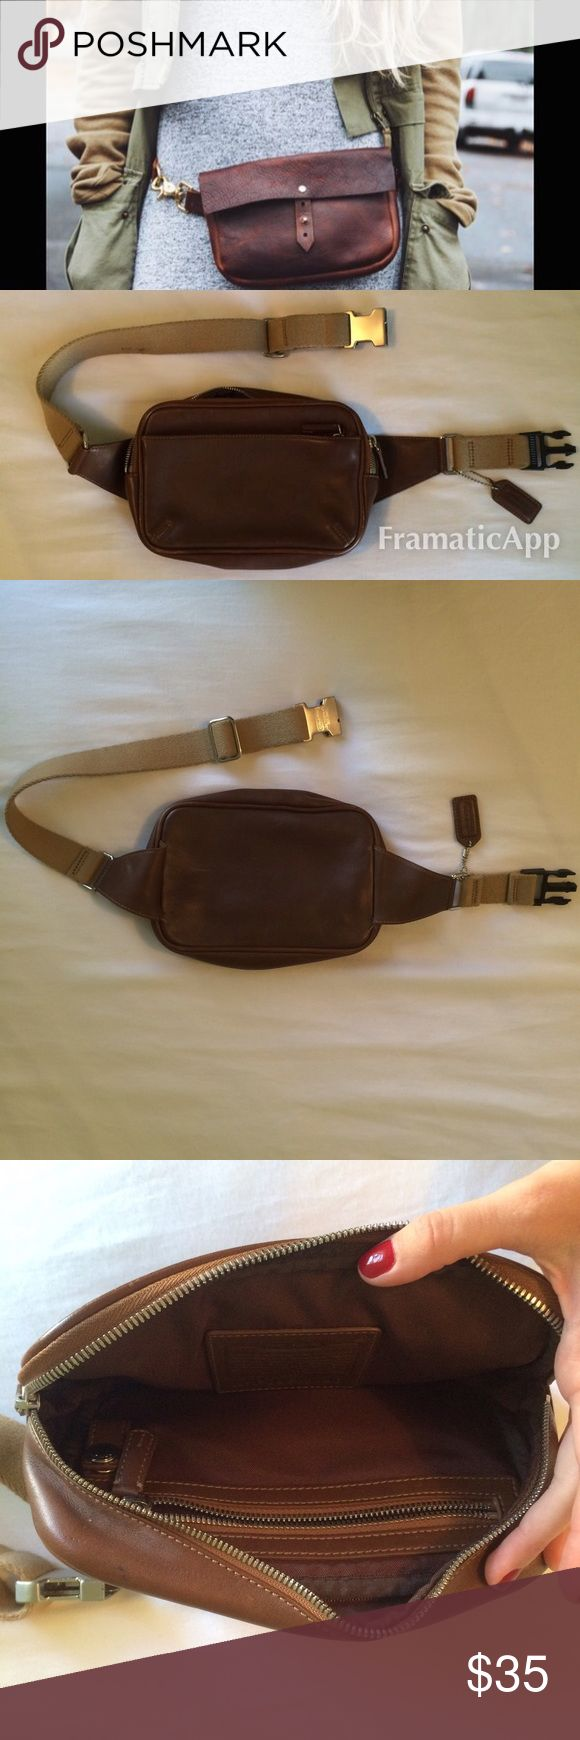 Coach Brown Leather Fanny Pack Coach brown leather fanny pack. There is an external pocket and an internal pocket. Both pockets have zippers. Waistband is adjustable. Great for music festivals! Coach Bags